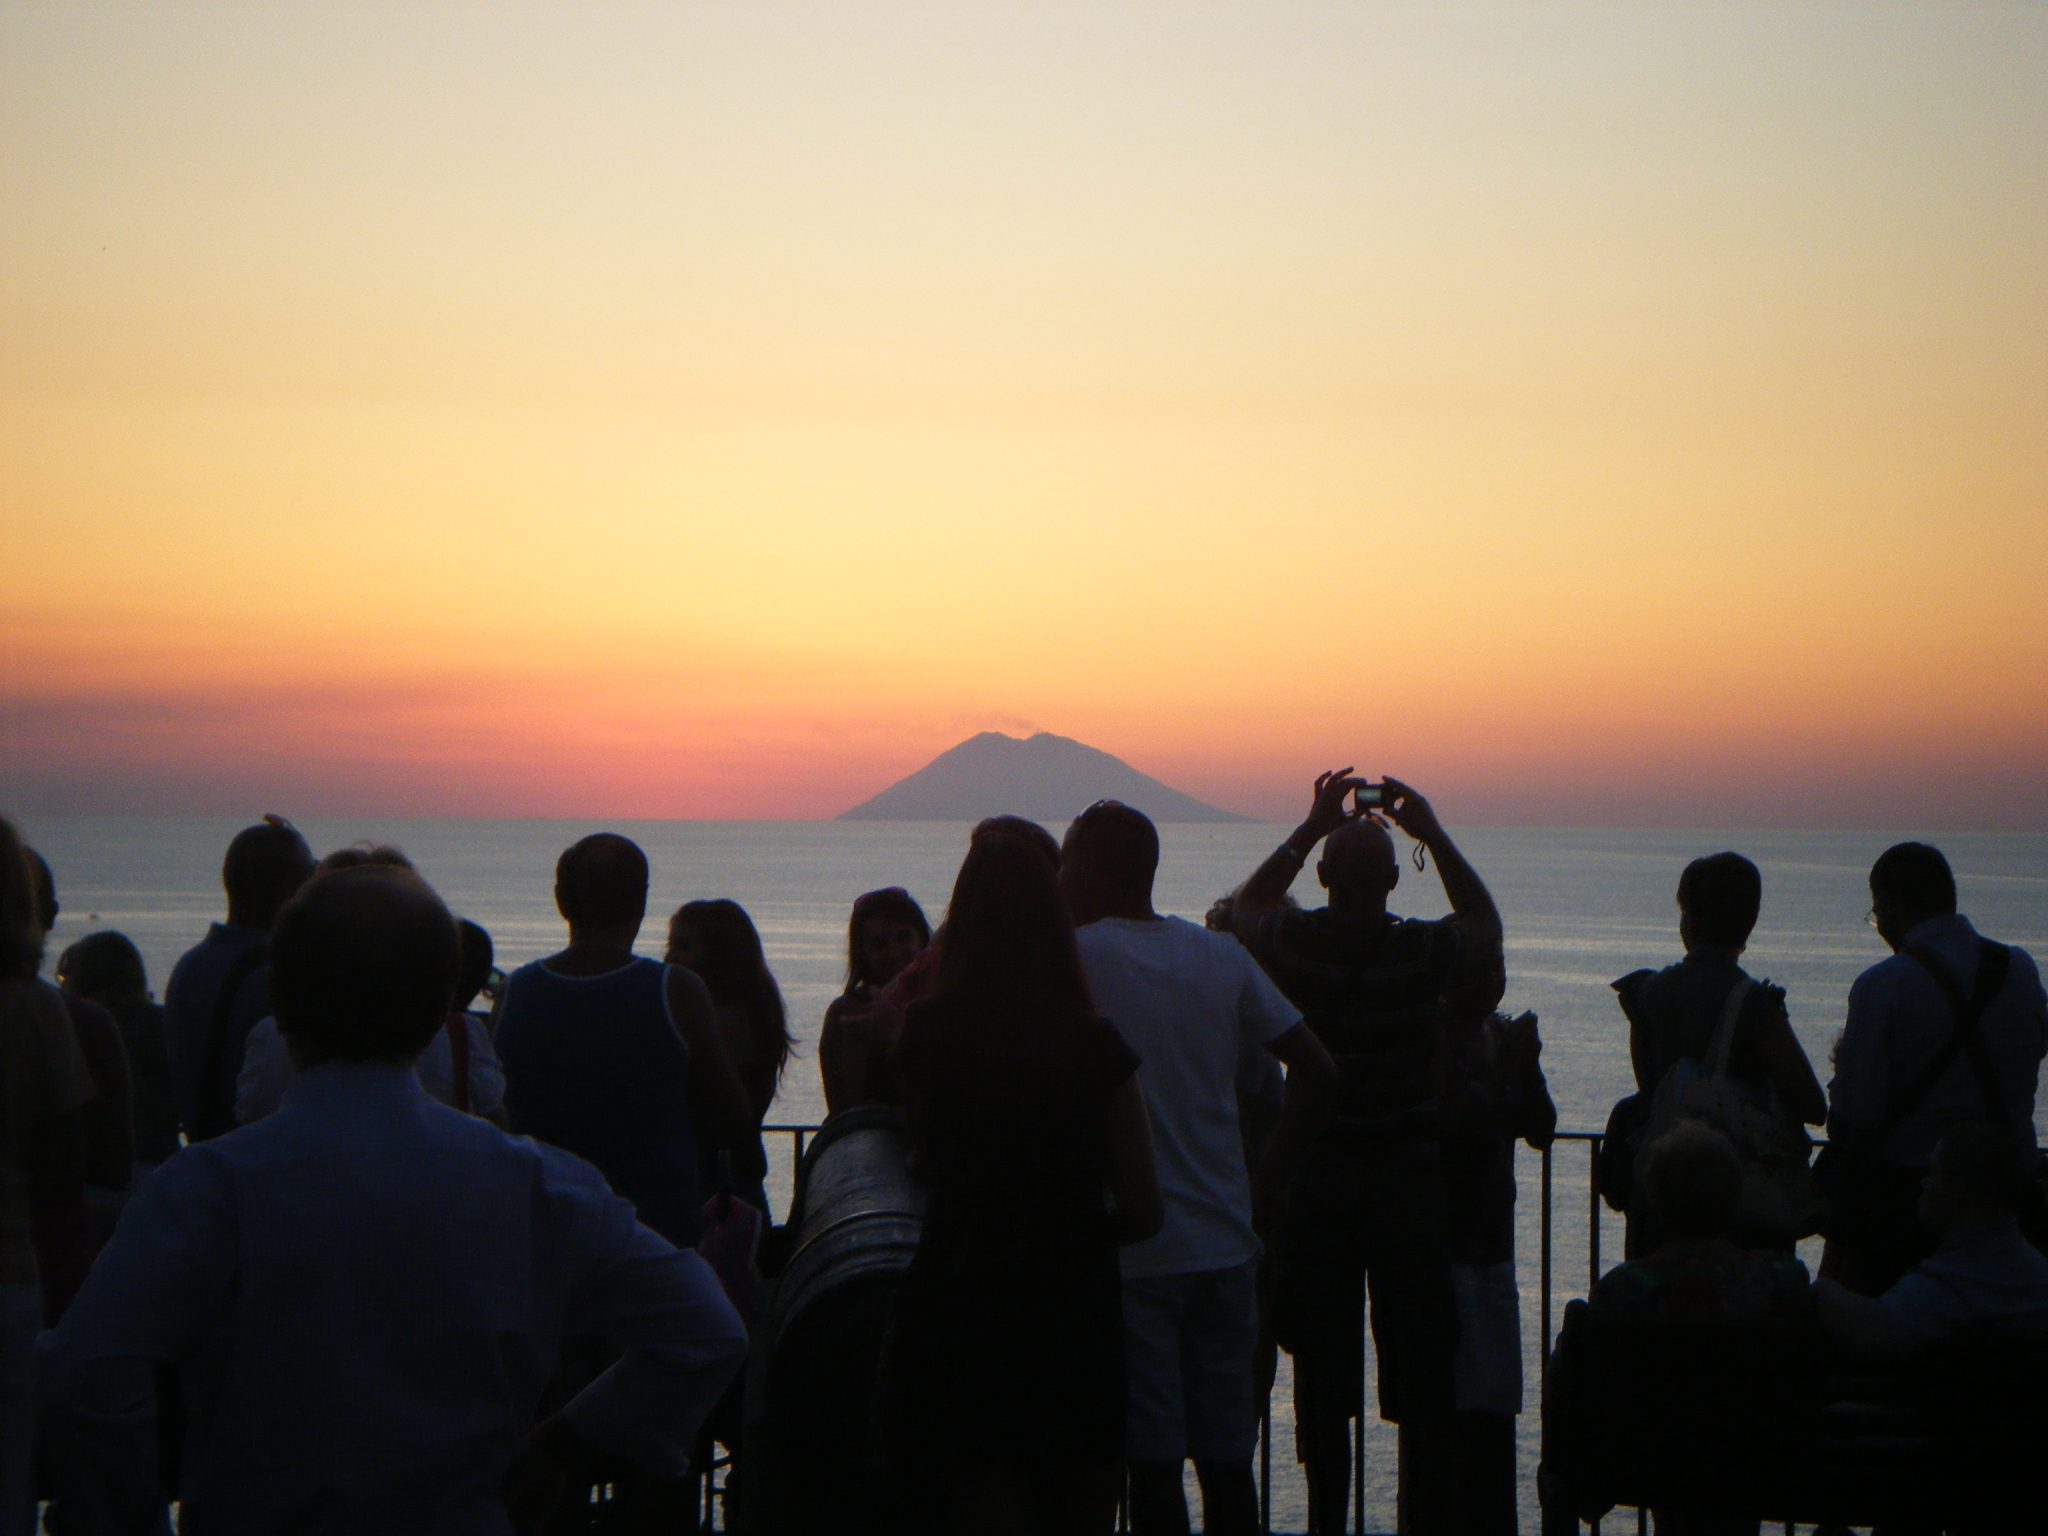 In Tropea a crowd forms to watch the sunset